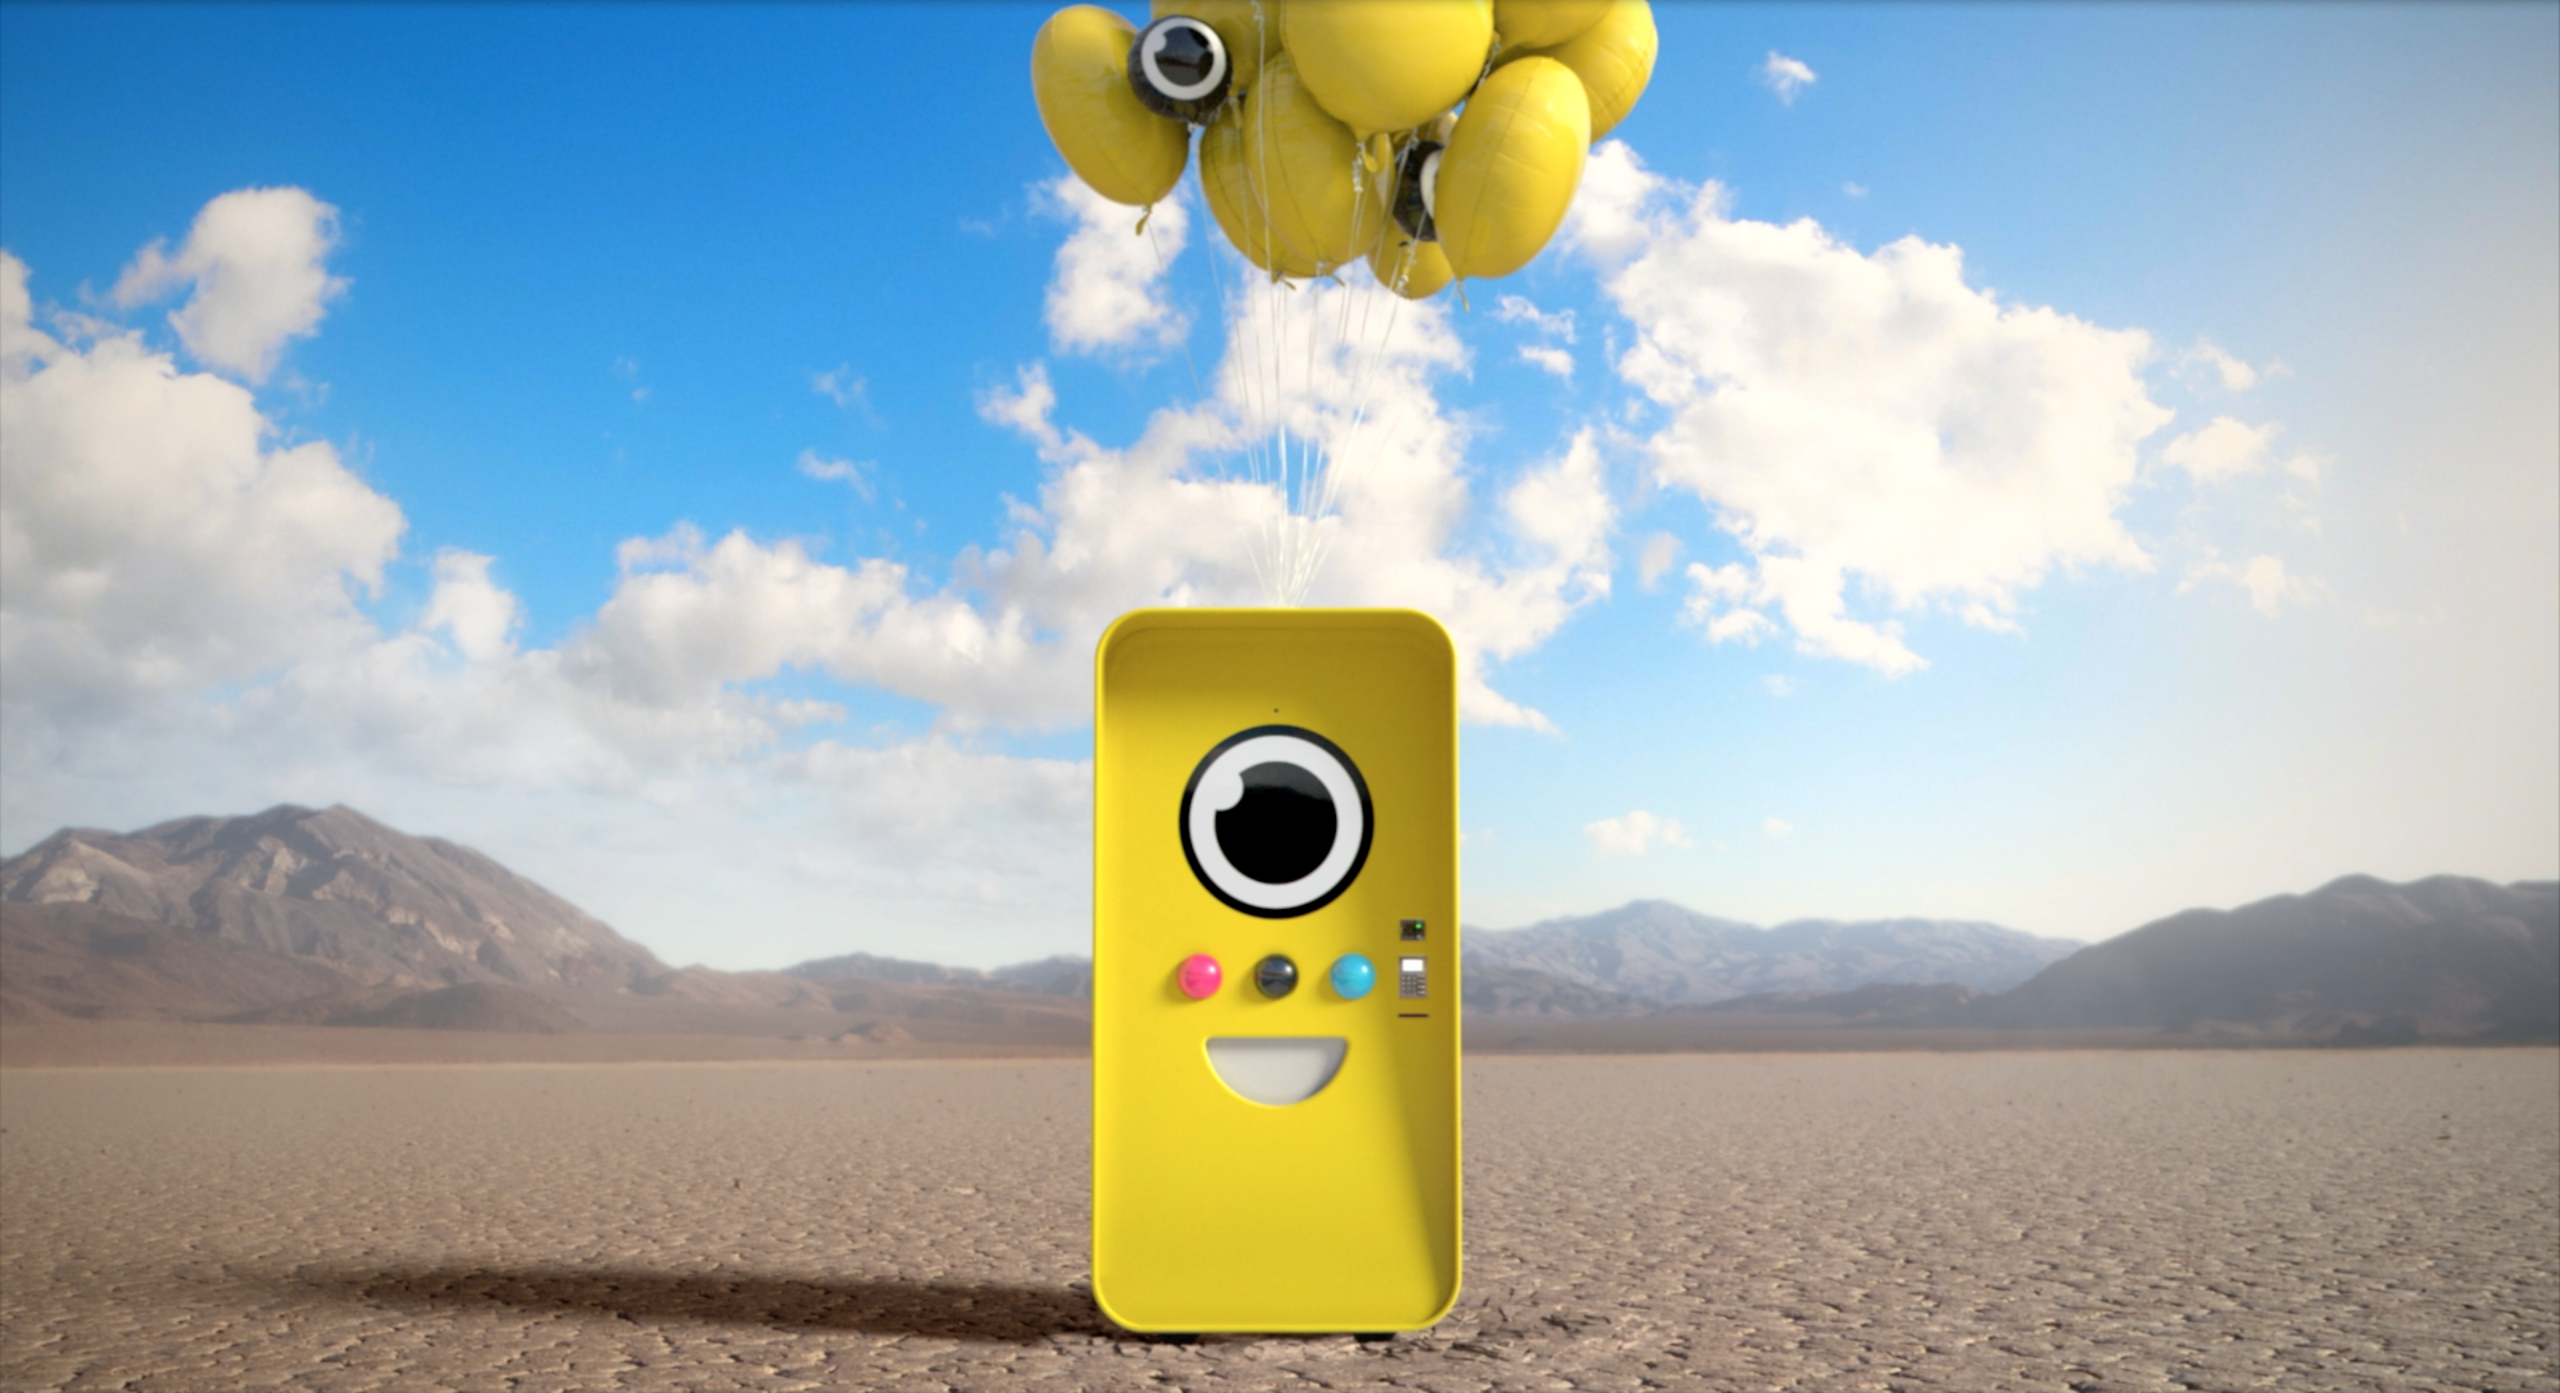 """8b6607edead3 Techmeme  Snap to sell Spectacles through """"Snapbot"""" vending machines in  different locations for one day  sources say Snap will likely only sell a  few ..."""